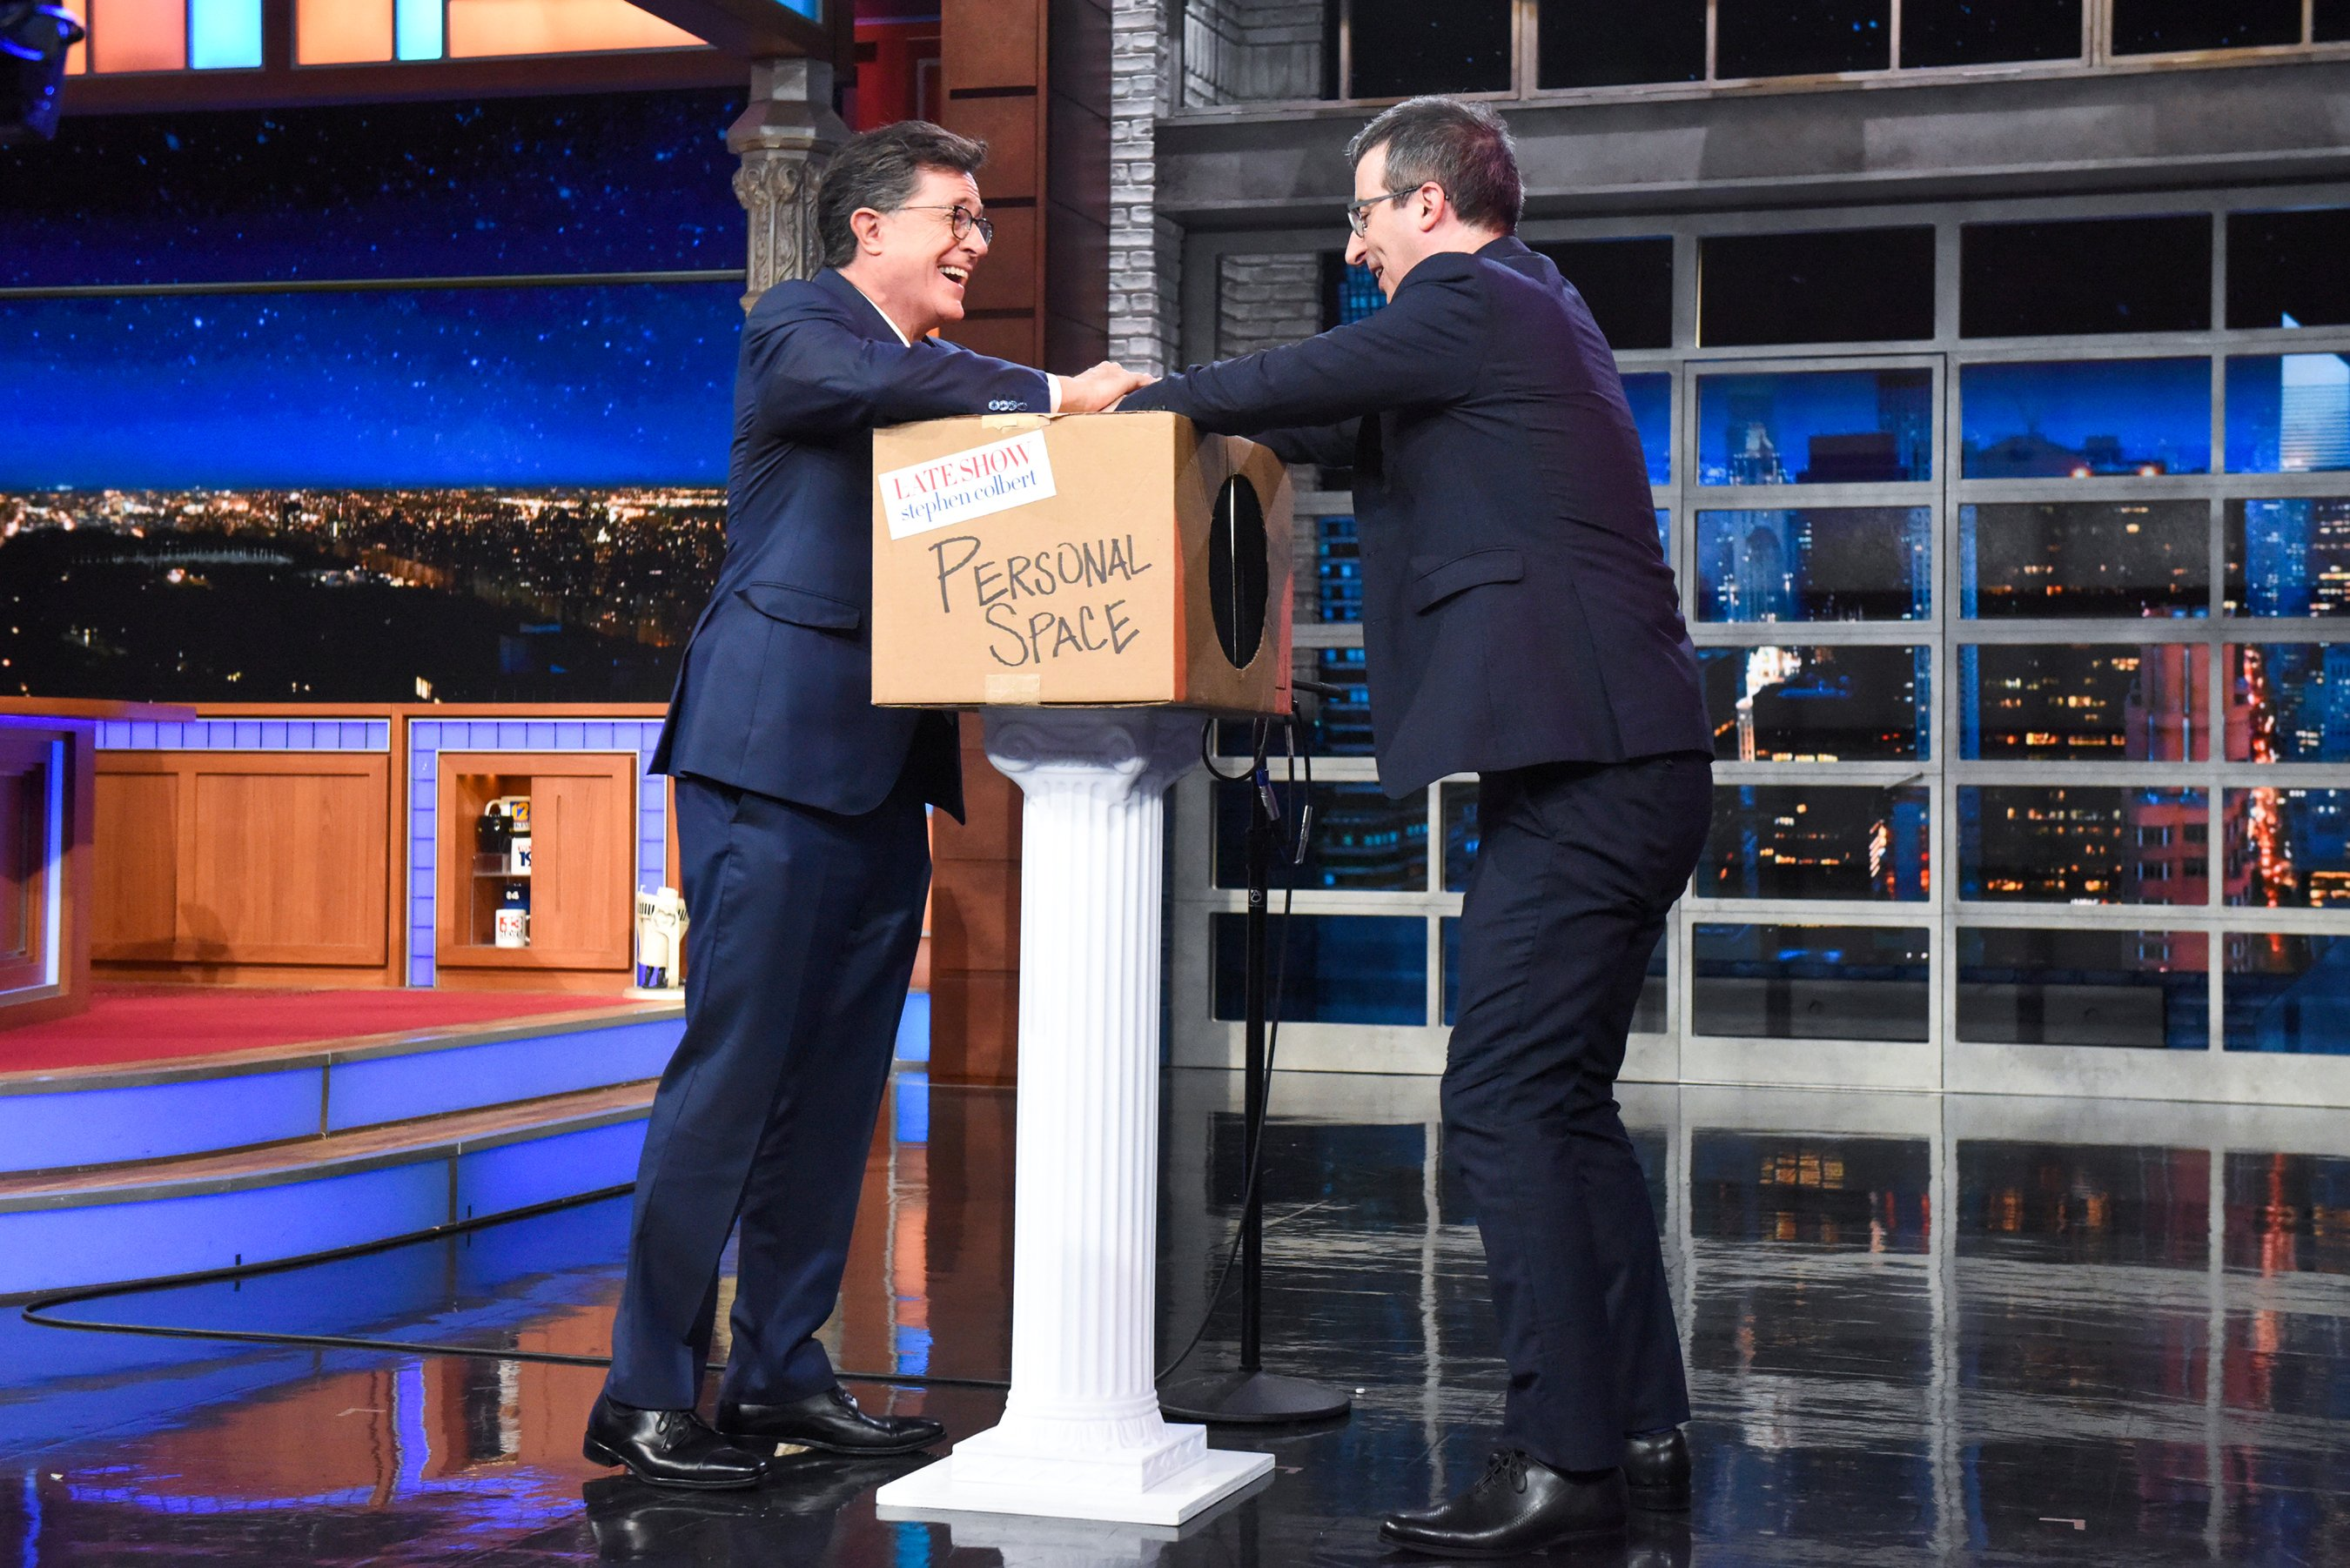 John Oliver, Stephen Colbert get too close for comfort in Personal Space